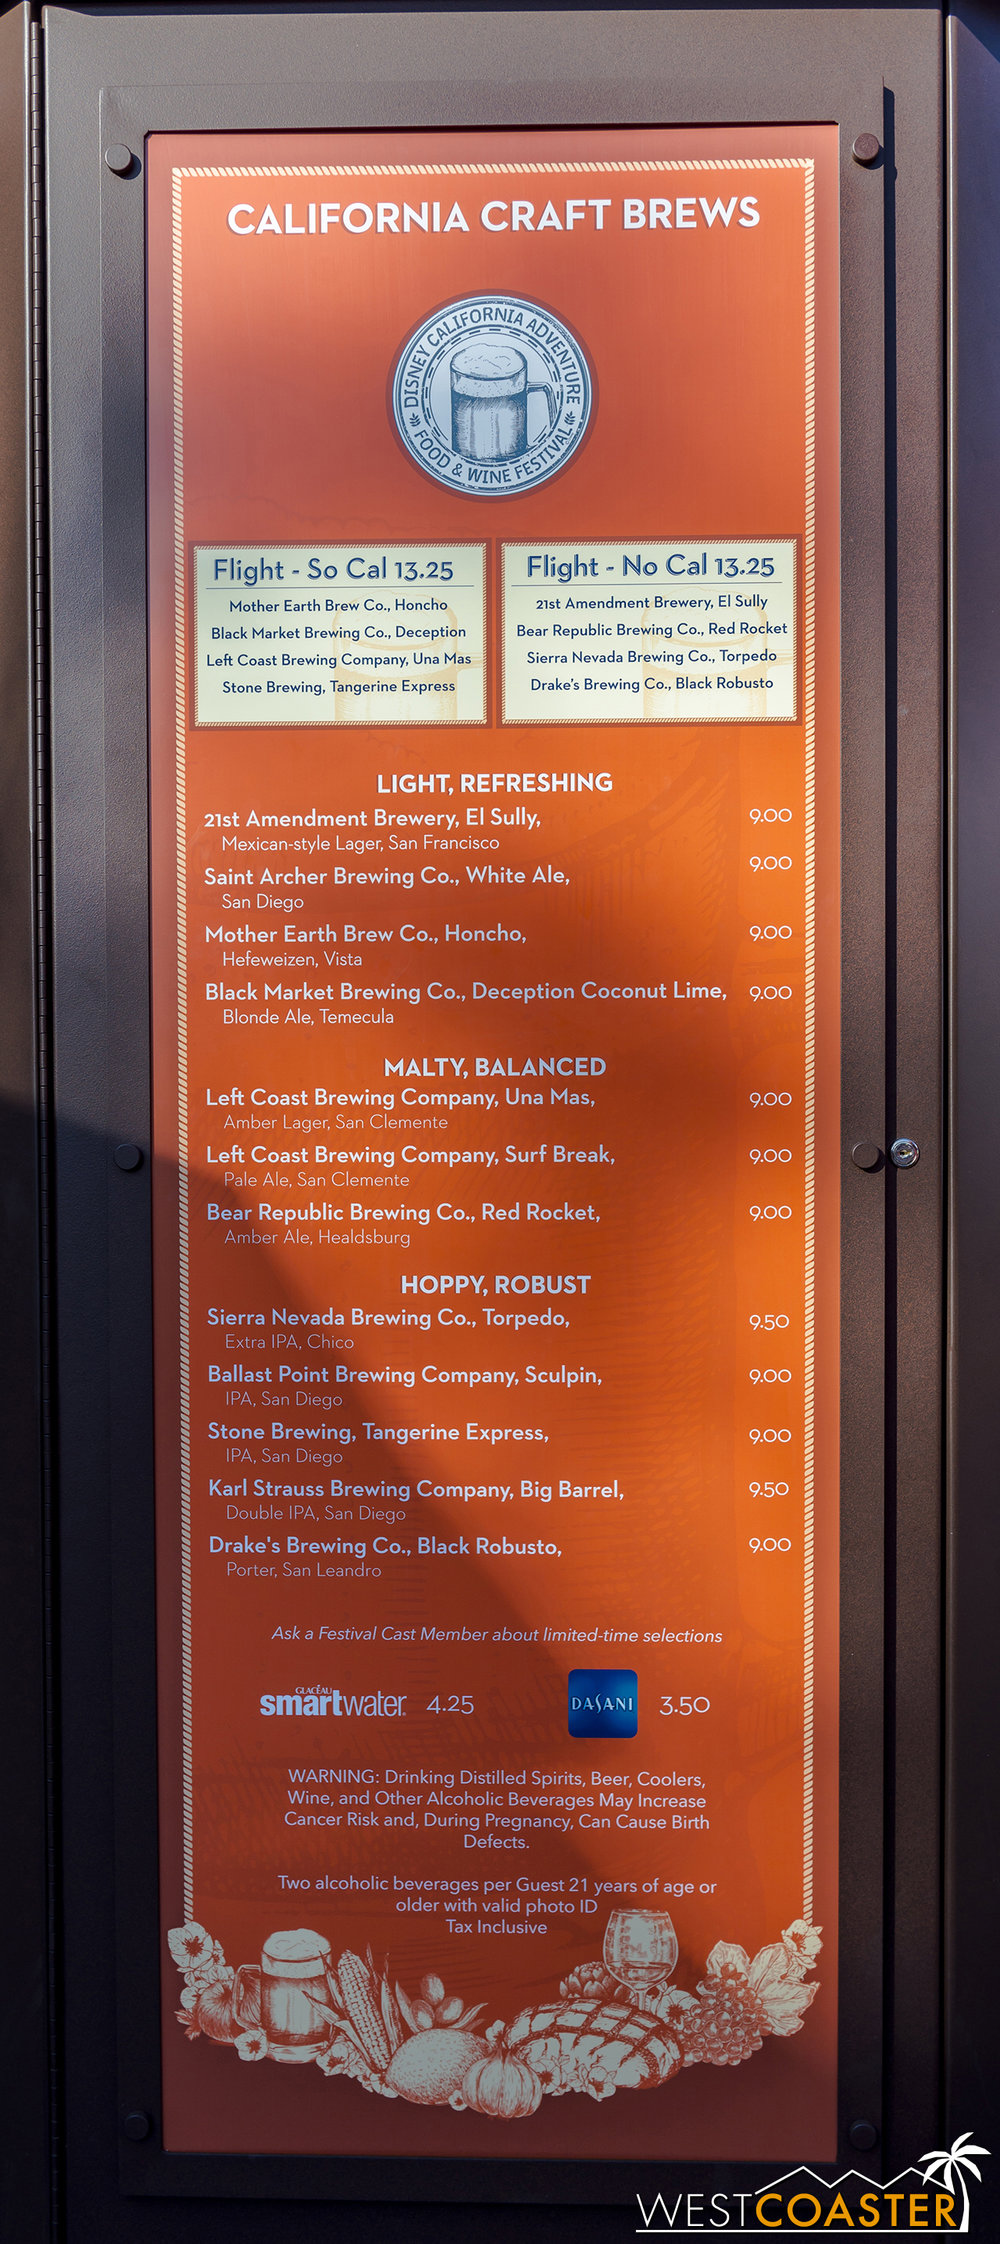 DLR-17_0314-G-Menu-05-CaliforniaCraftBrews.jpg